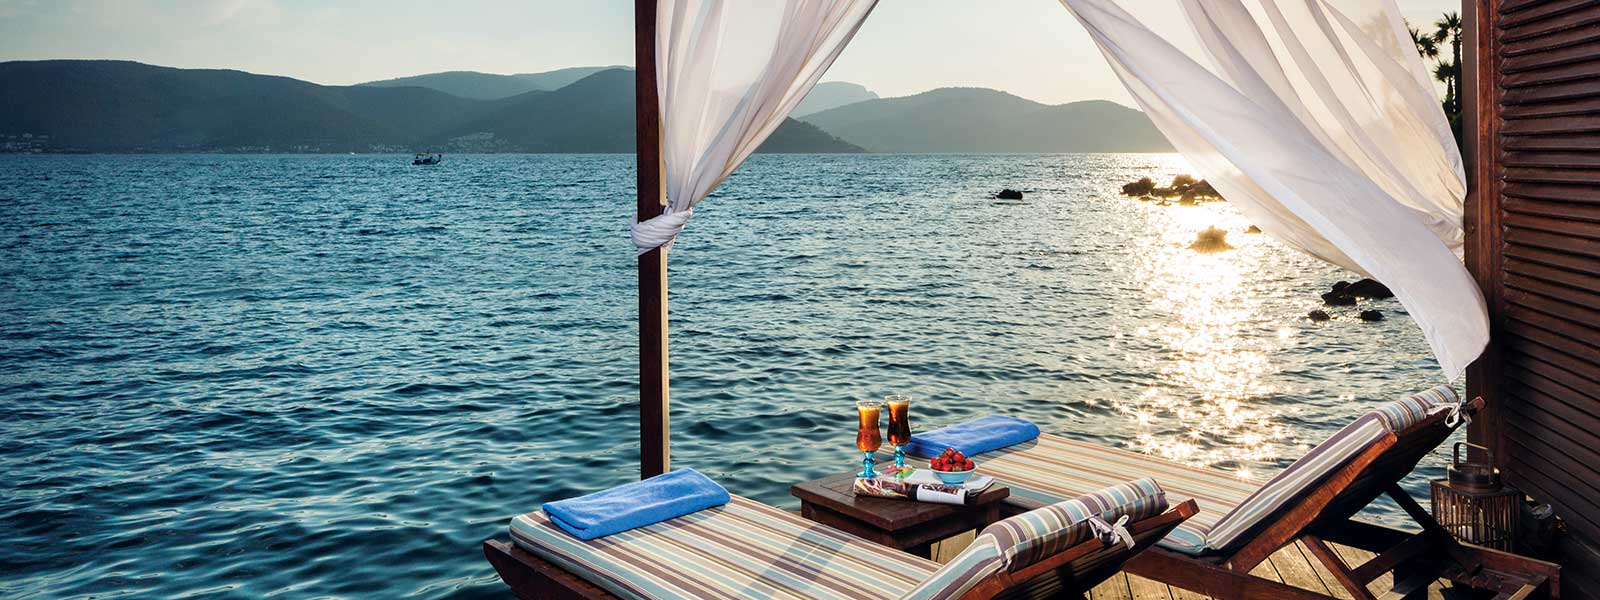 Travel Services for Turkey & Greece